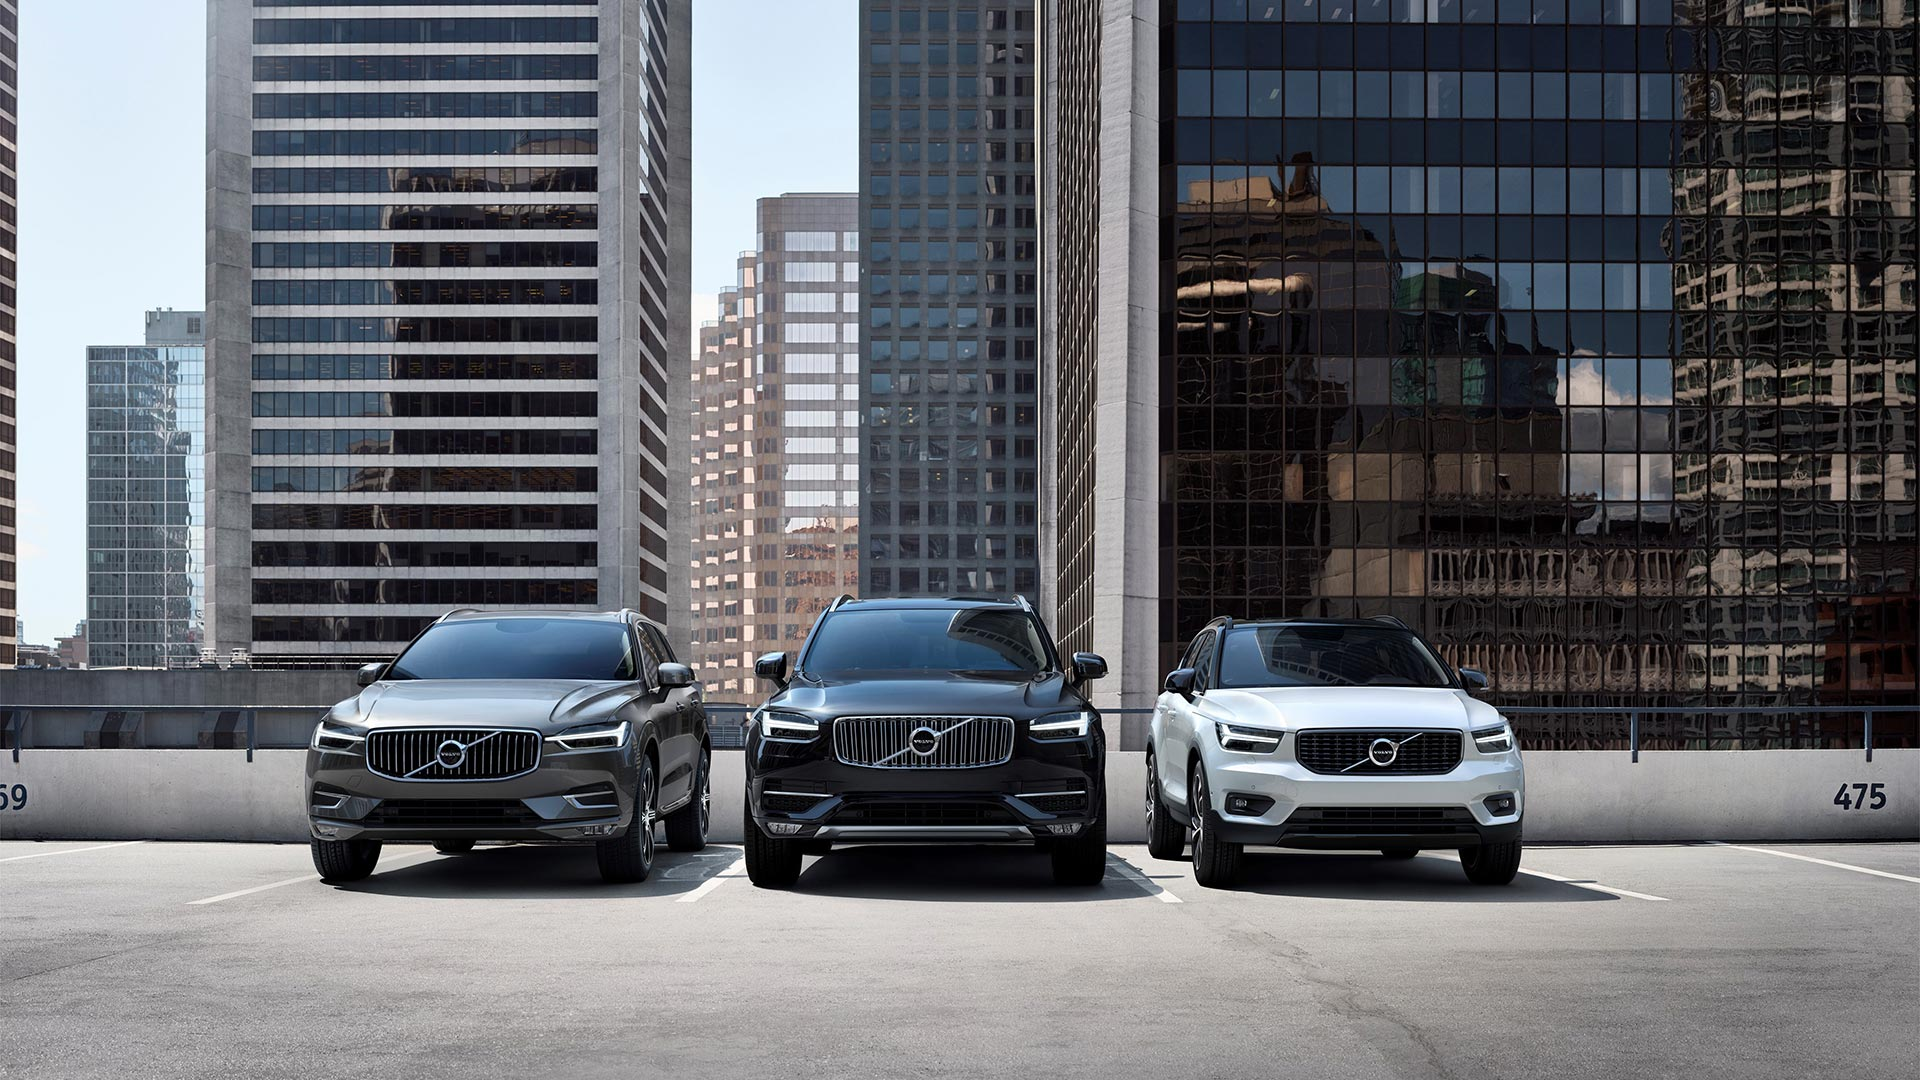 Volvo Line-Up In The City